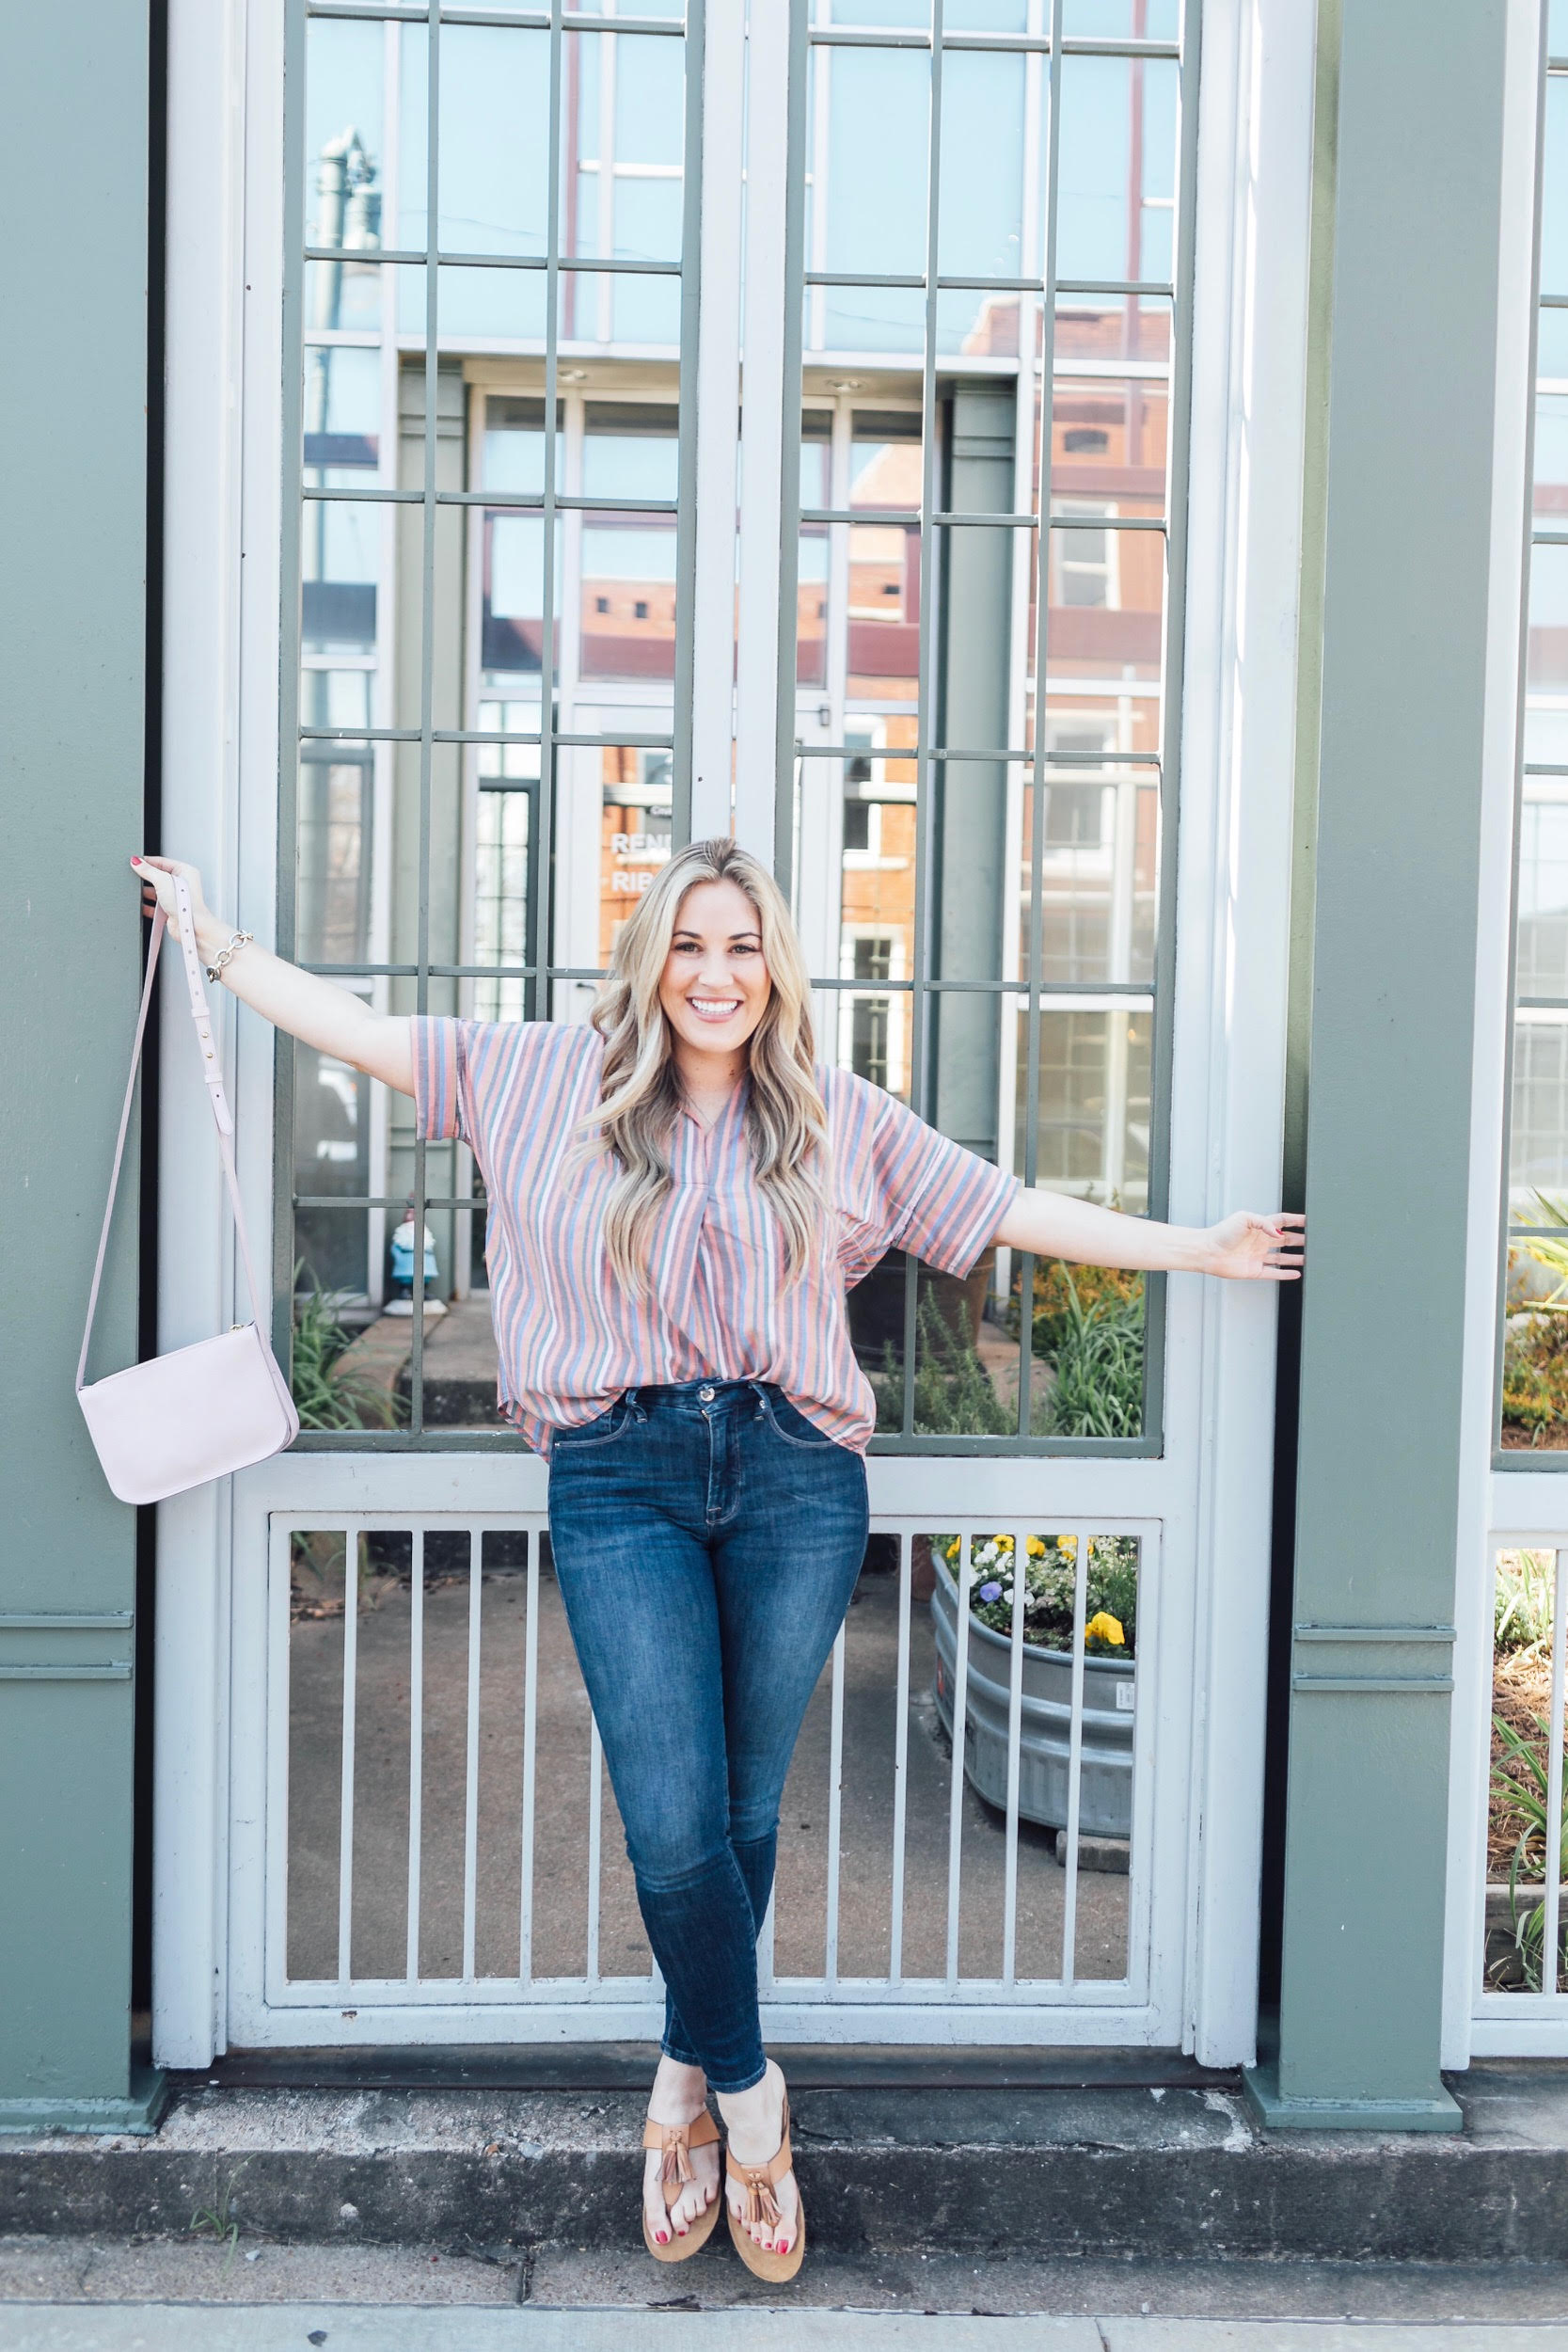 Comfortiva Gella tassel sandals style by top US fashion blog, Walking in Memphis in High Heels: image of a woman wearing a Madewell striped shirt, Good American skinny jeans, a Madewell crossbody bag, and Comfortiva Gella tassel sandals